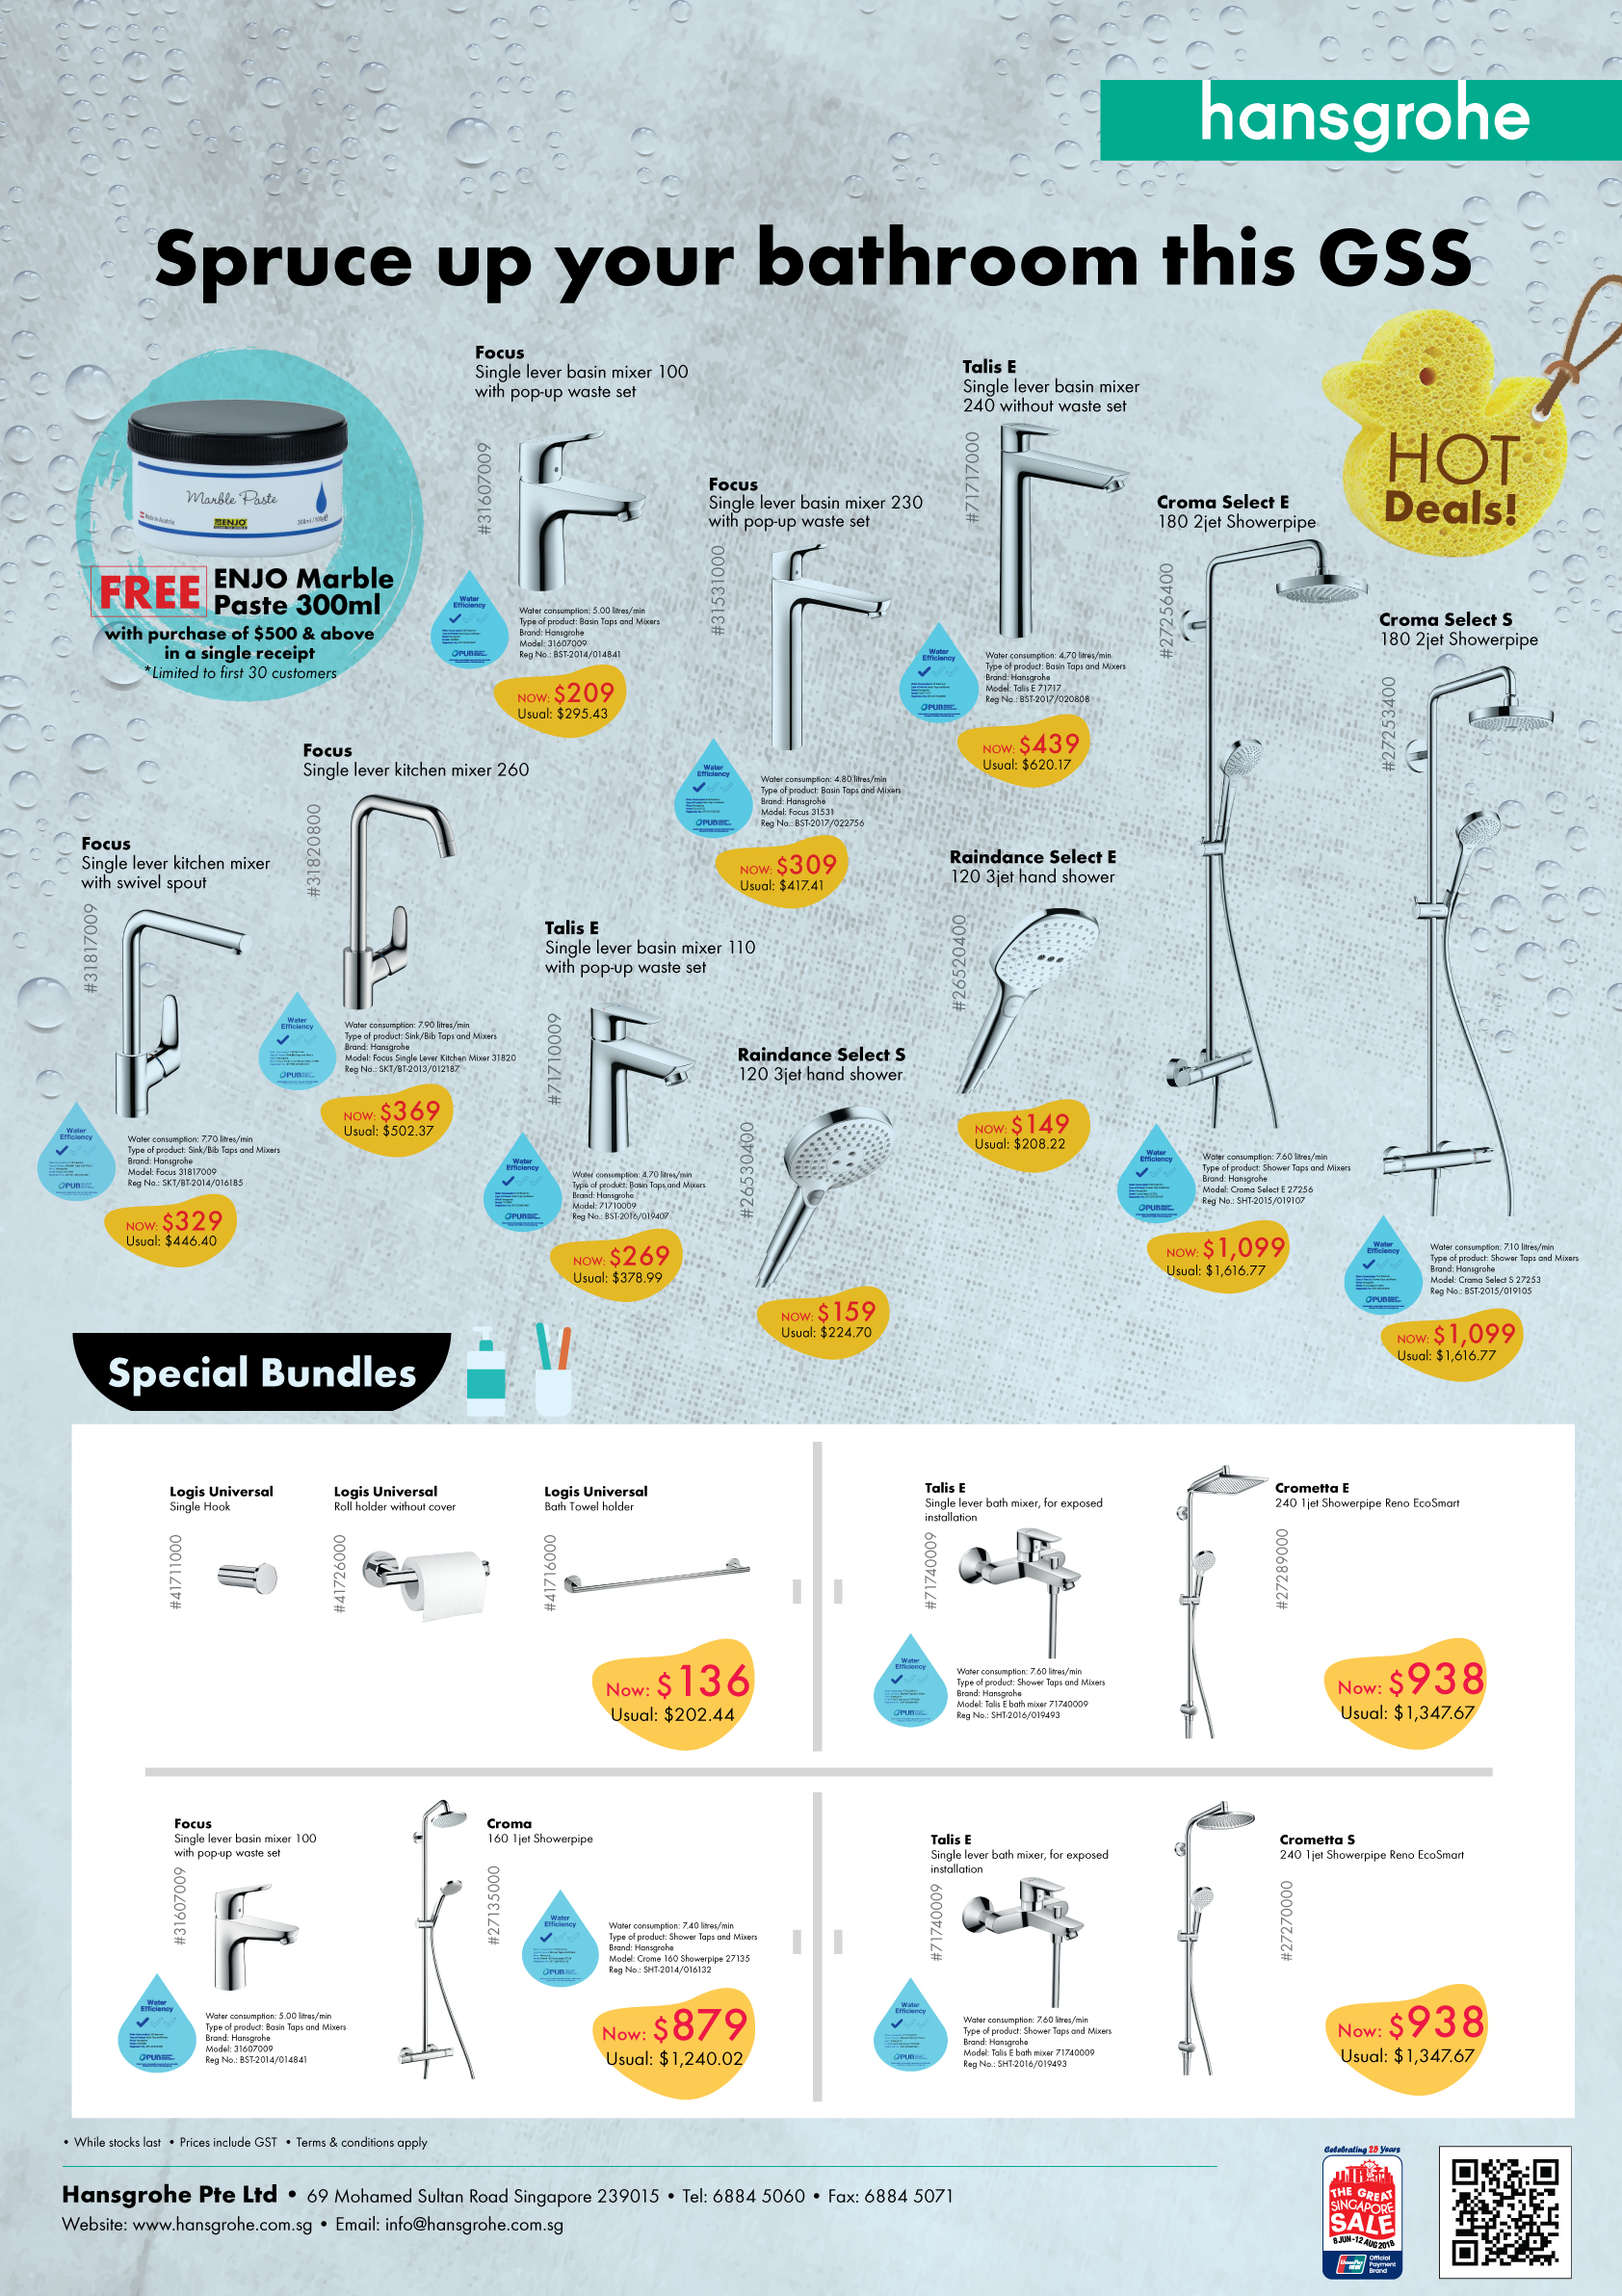 GSS promotion | Hansgrohe Singapore